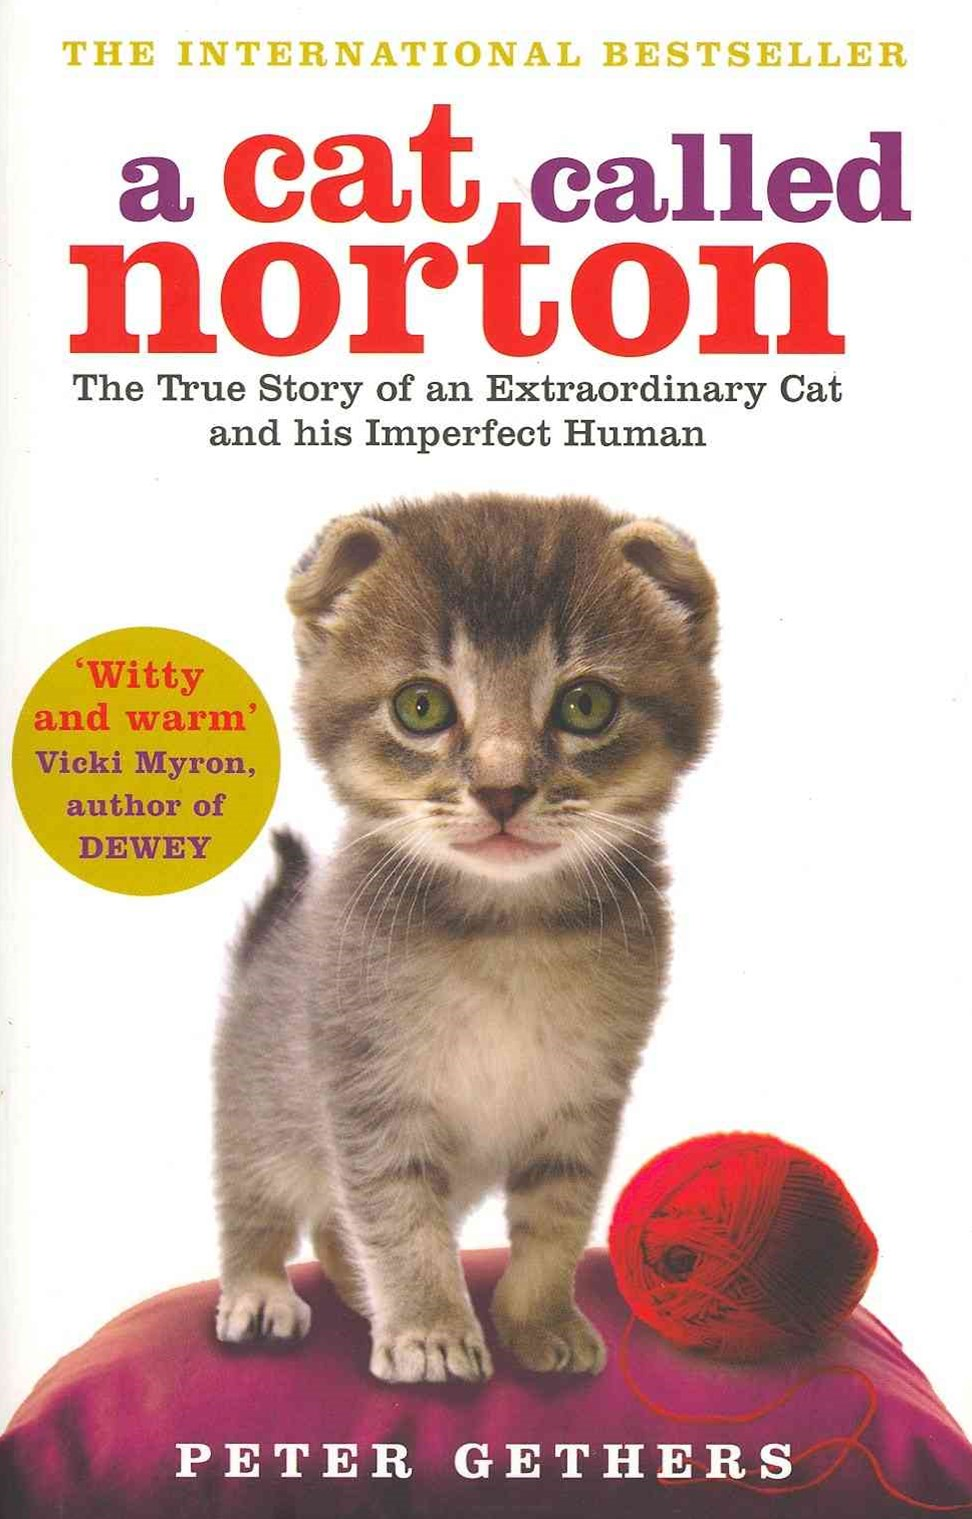 Cat Called Norton, AThe True Story of an Extraordinary Cat